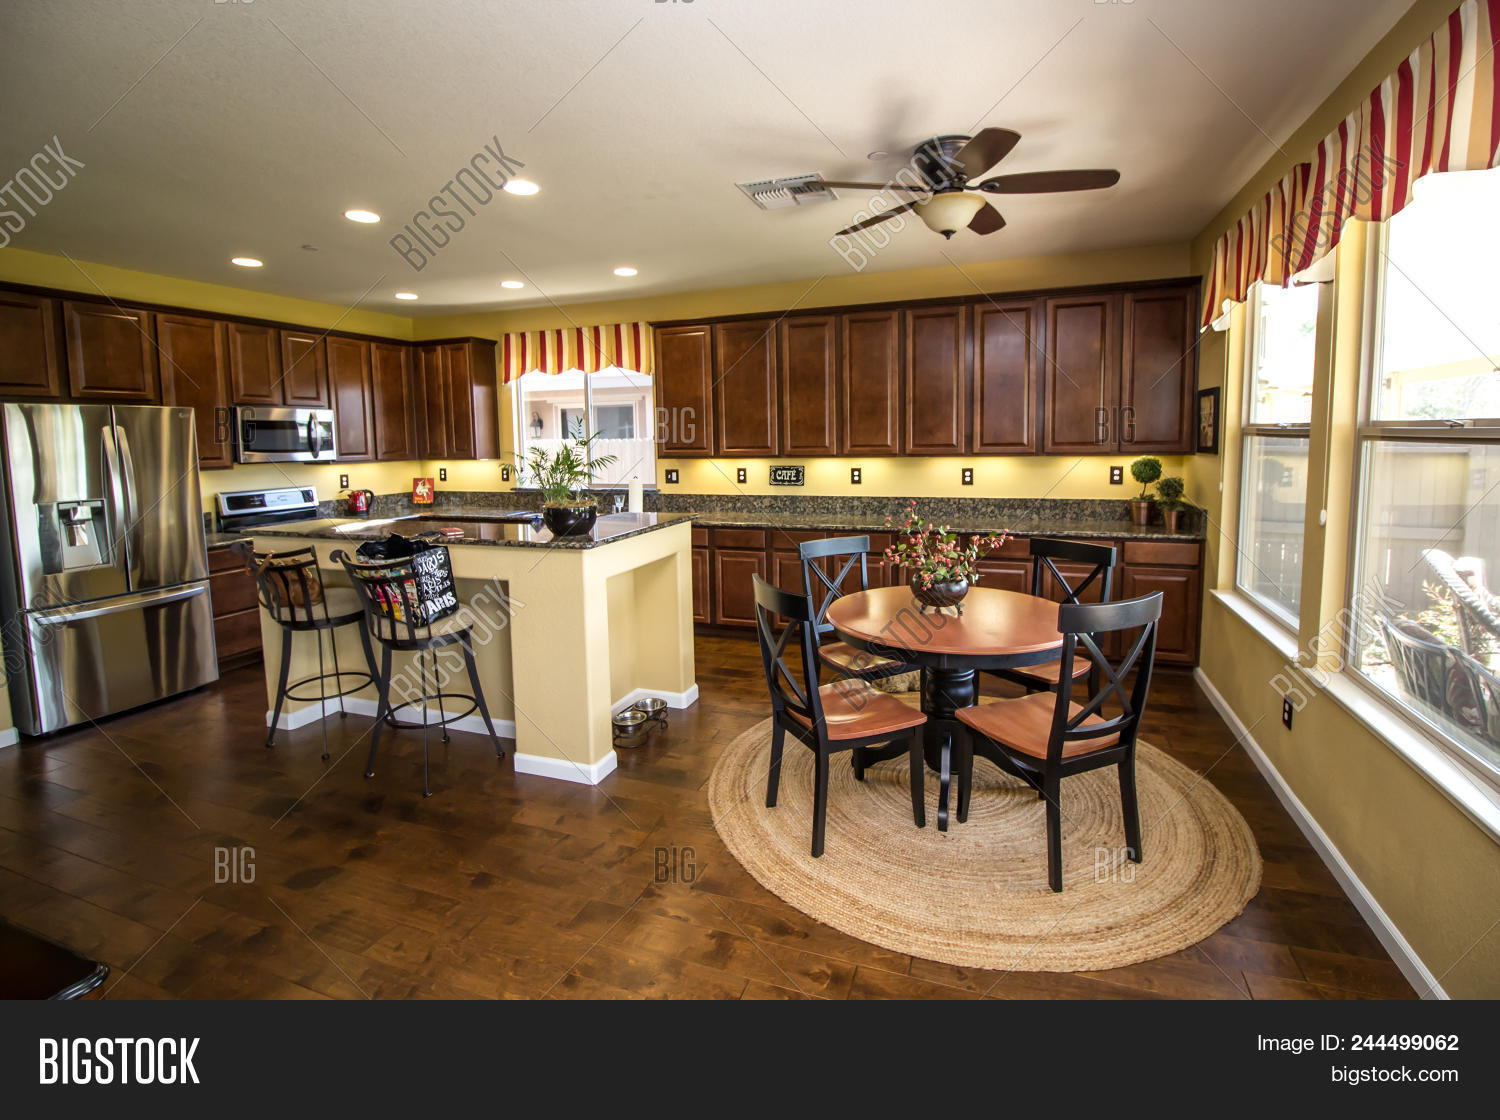 Picture of: Modern Kitchen Island Image Photo Free Trial Bigstock